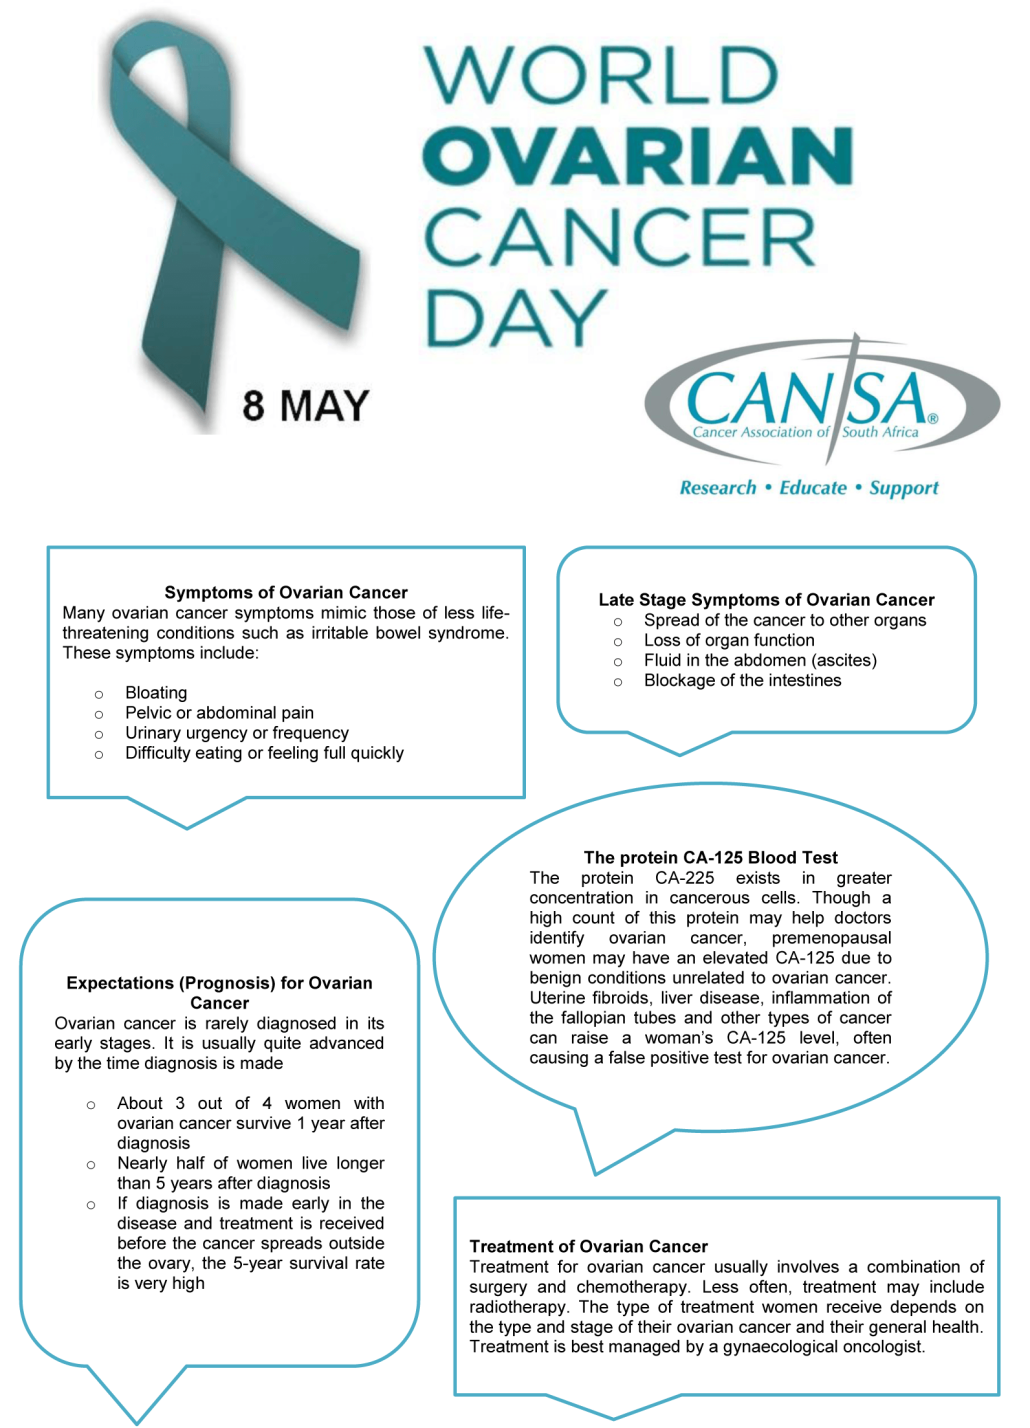 Raise Awareness Re Ovarian Cancer Cansa The Cancer Association Of South Africa